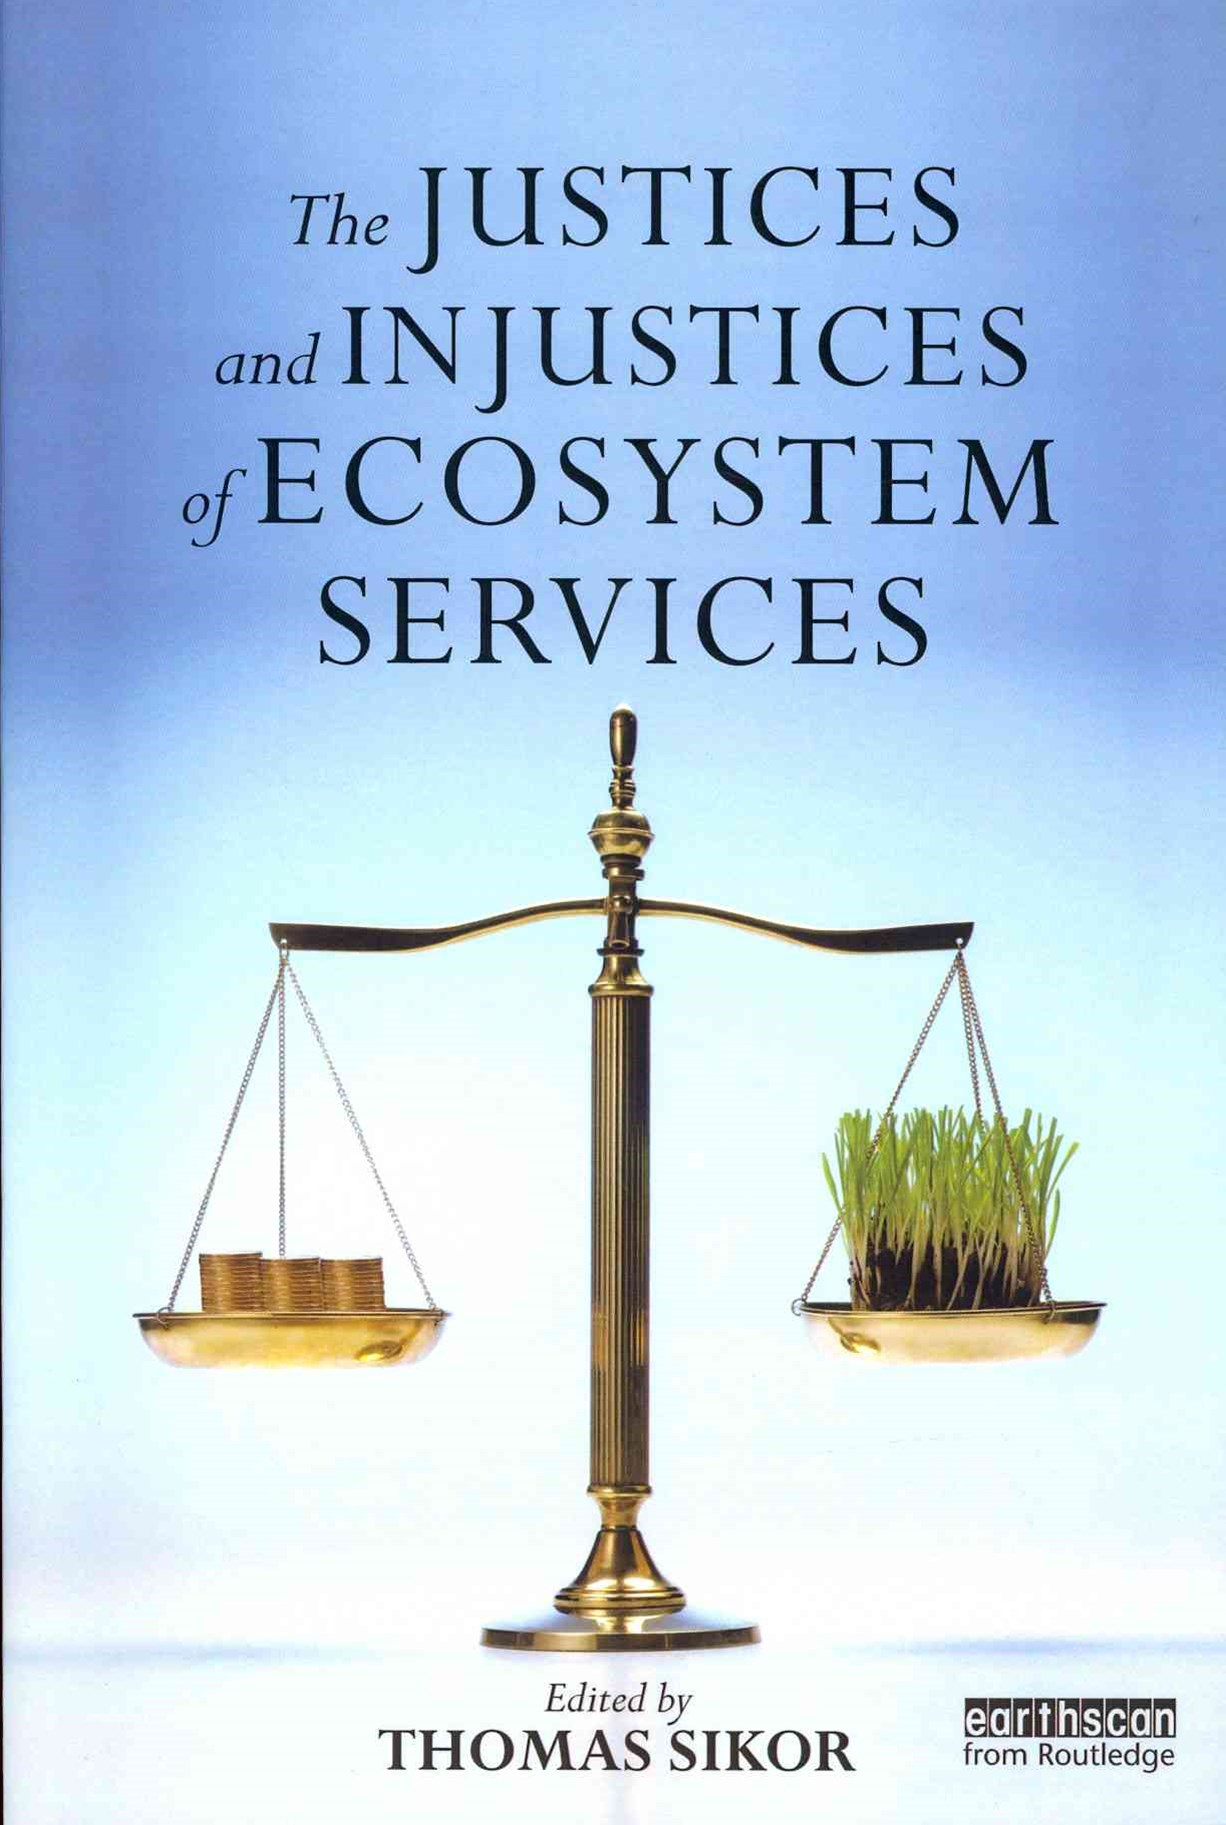 Justices and Injustices of Ecosystem Services